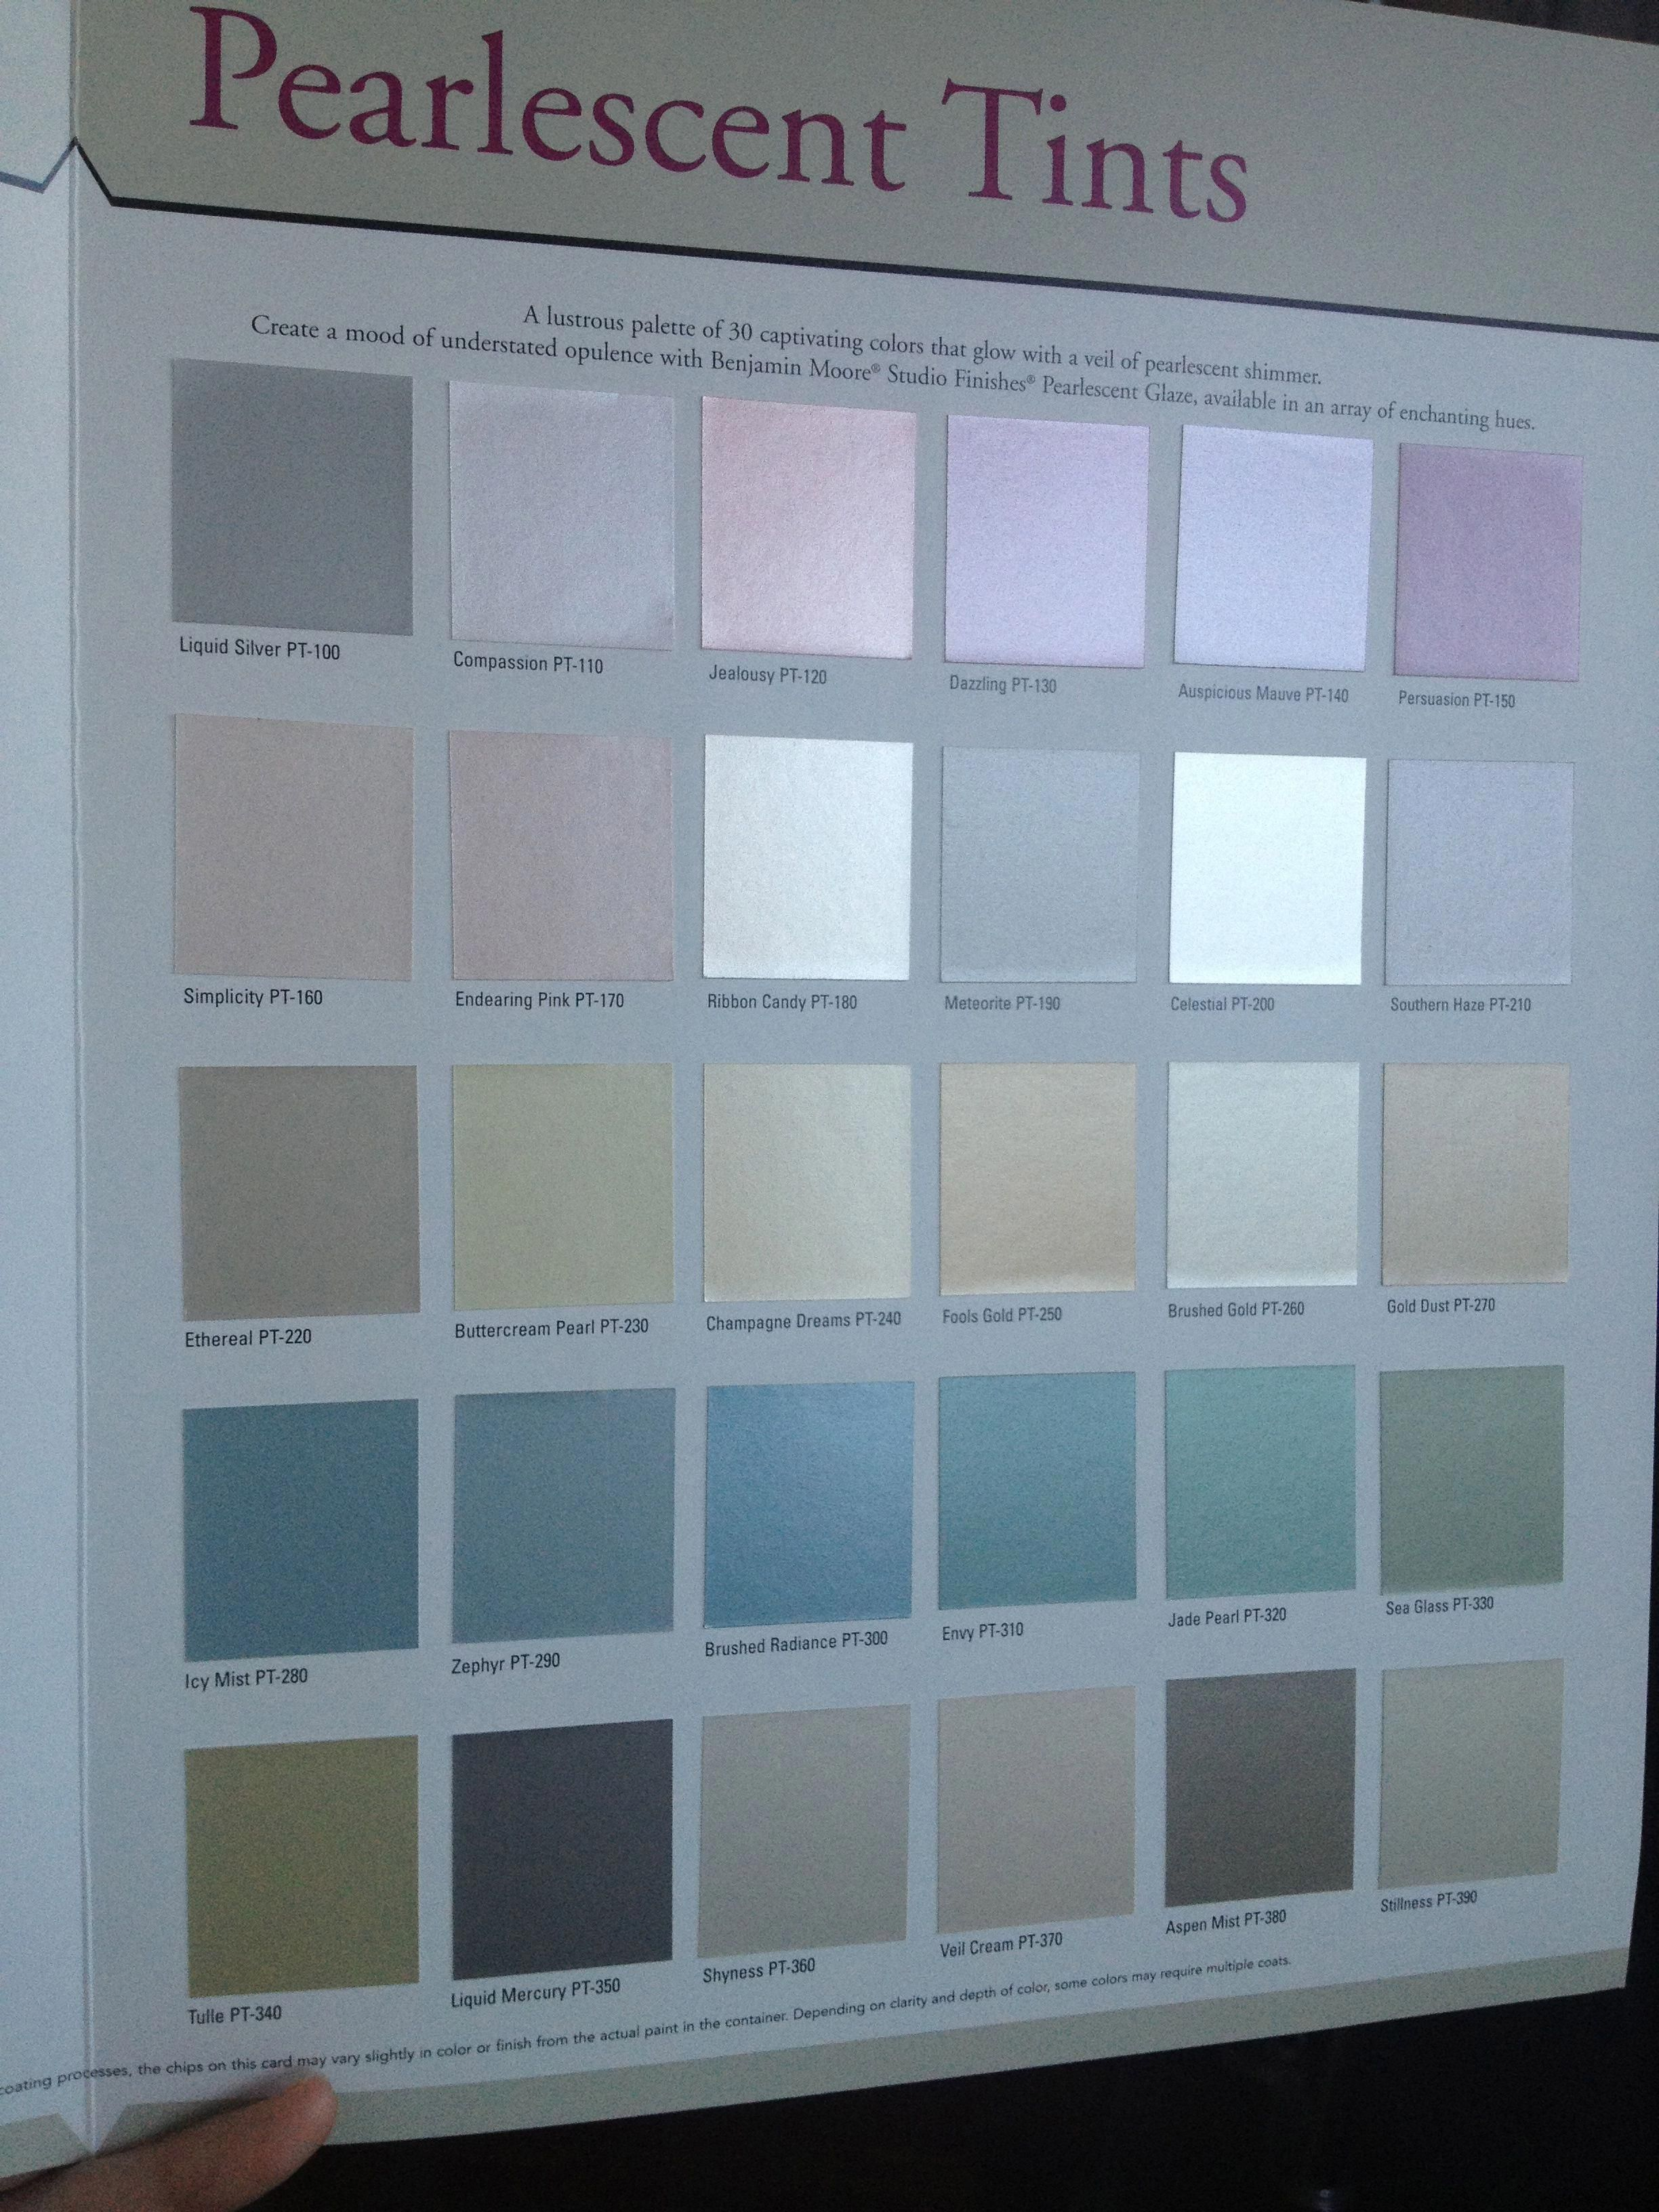 benjamin moore pearlescent tints on interior wall paint colors id=29067